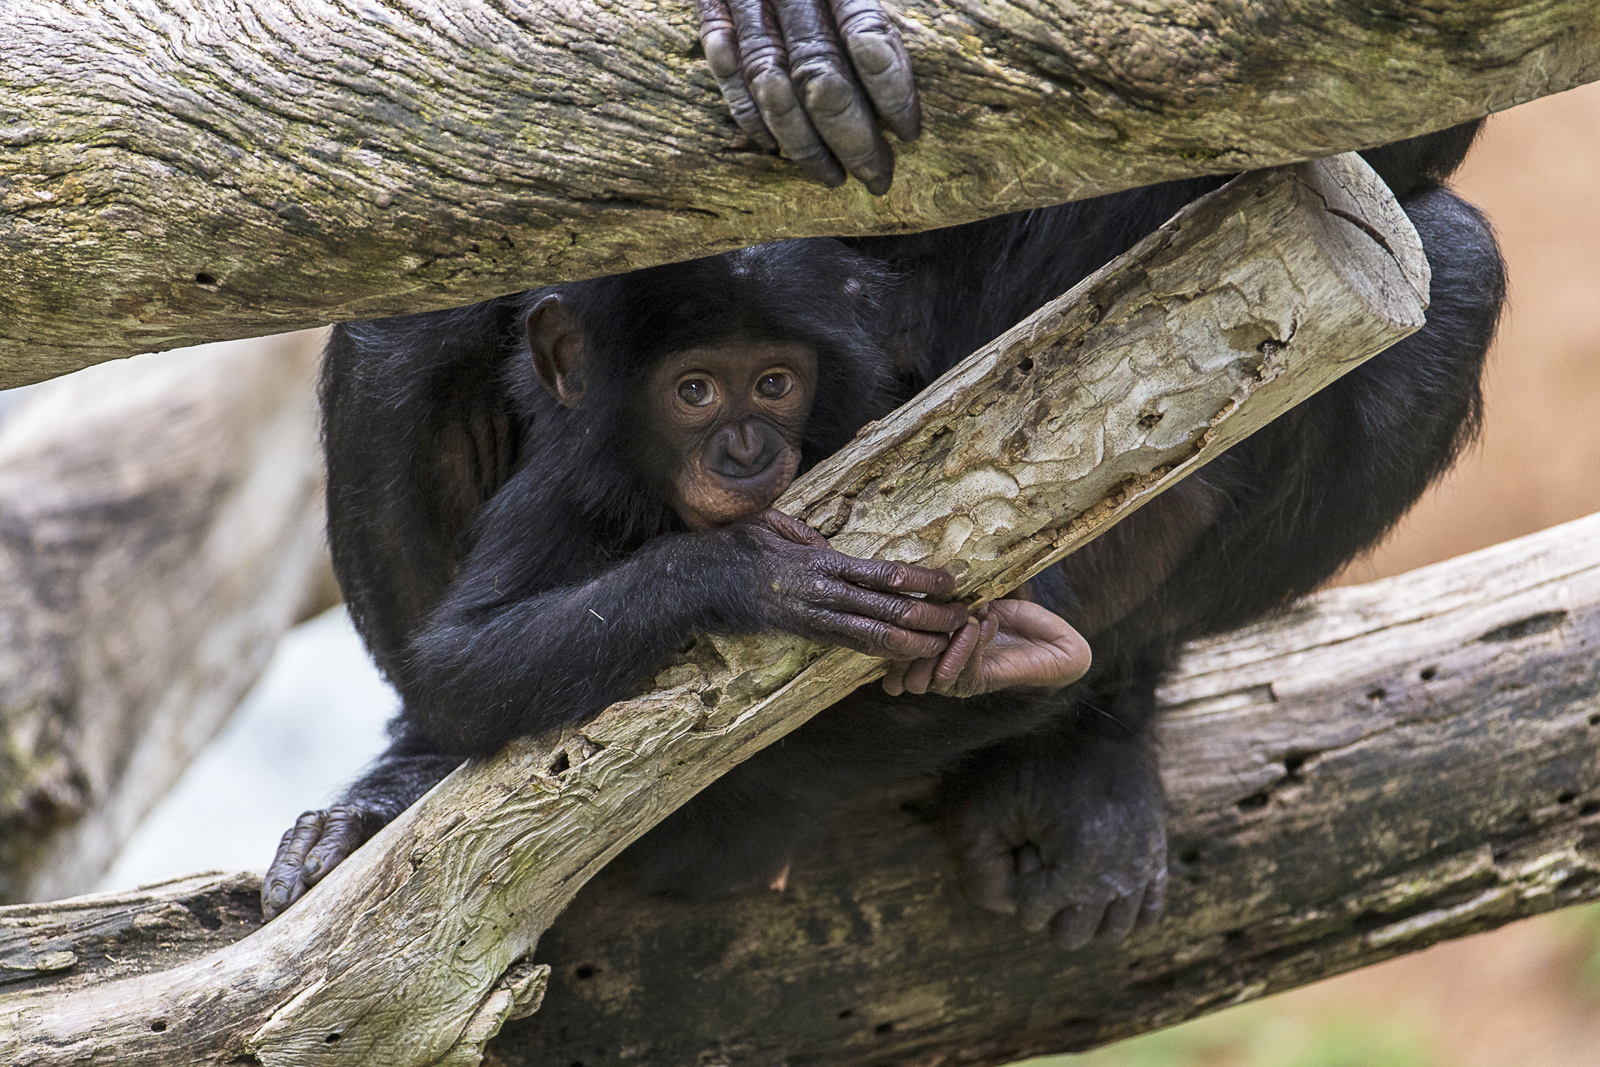 Bonobos are curious, complex, long-lived great apes... a lot like humans.